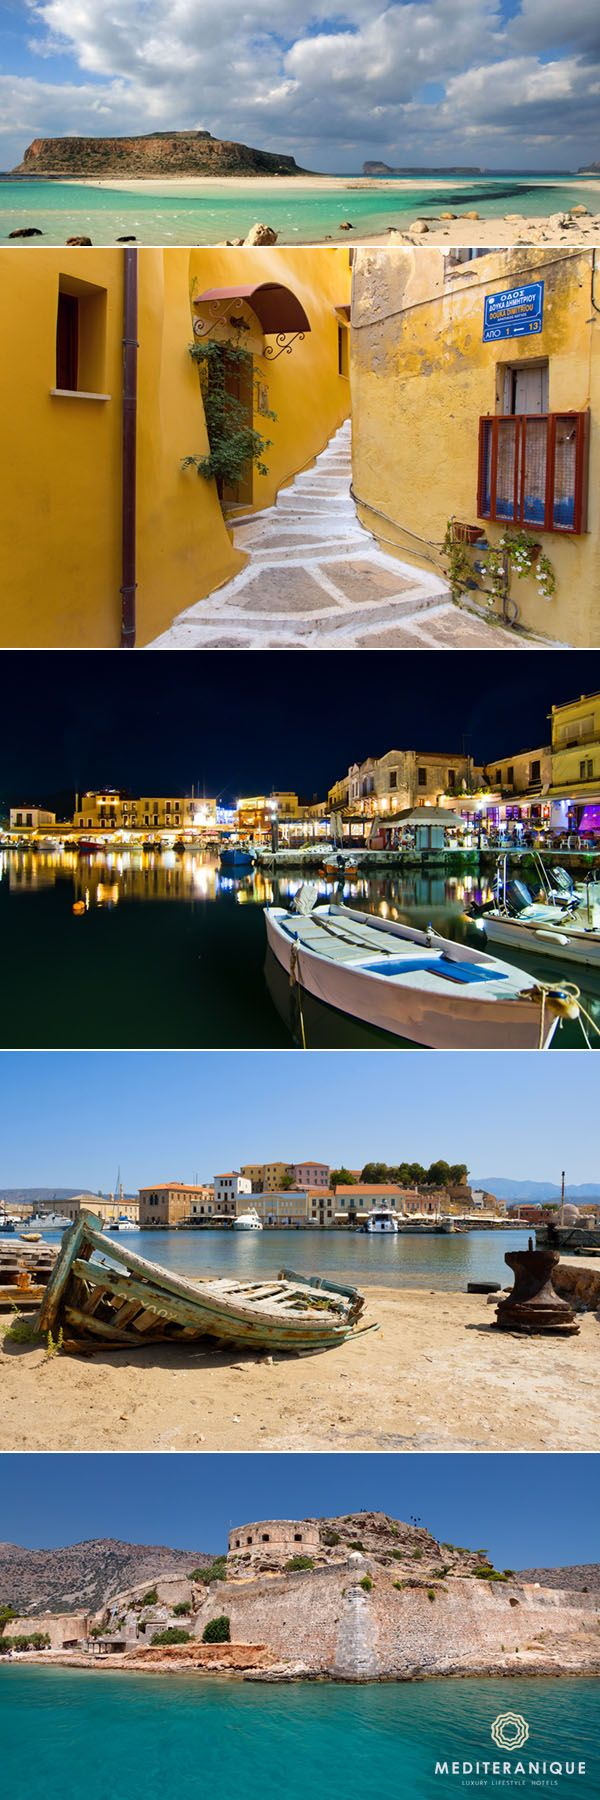 Crete is one of the most diverse islands in greece for luxury hotels in crete